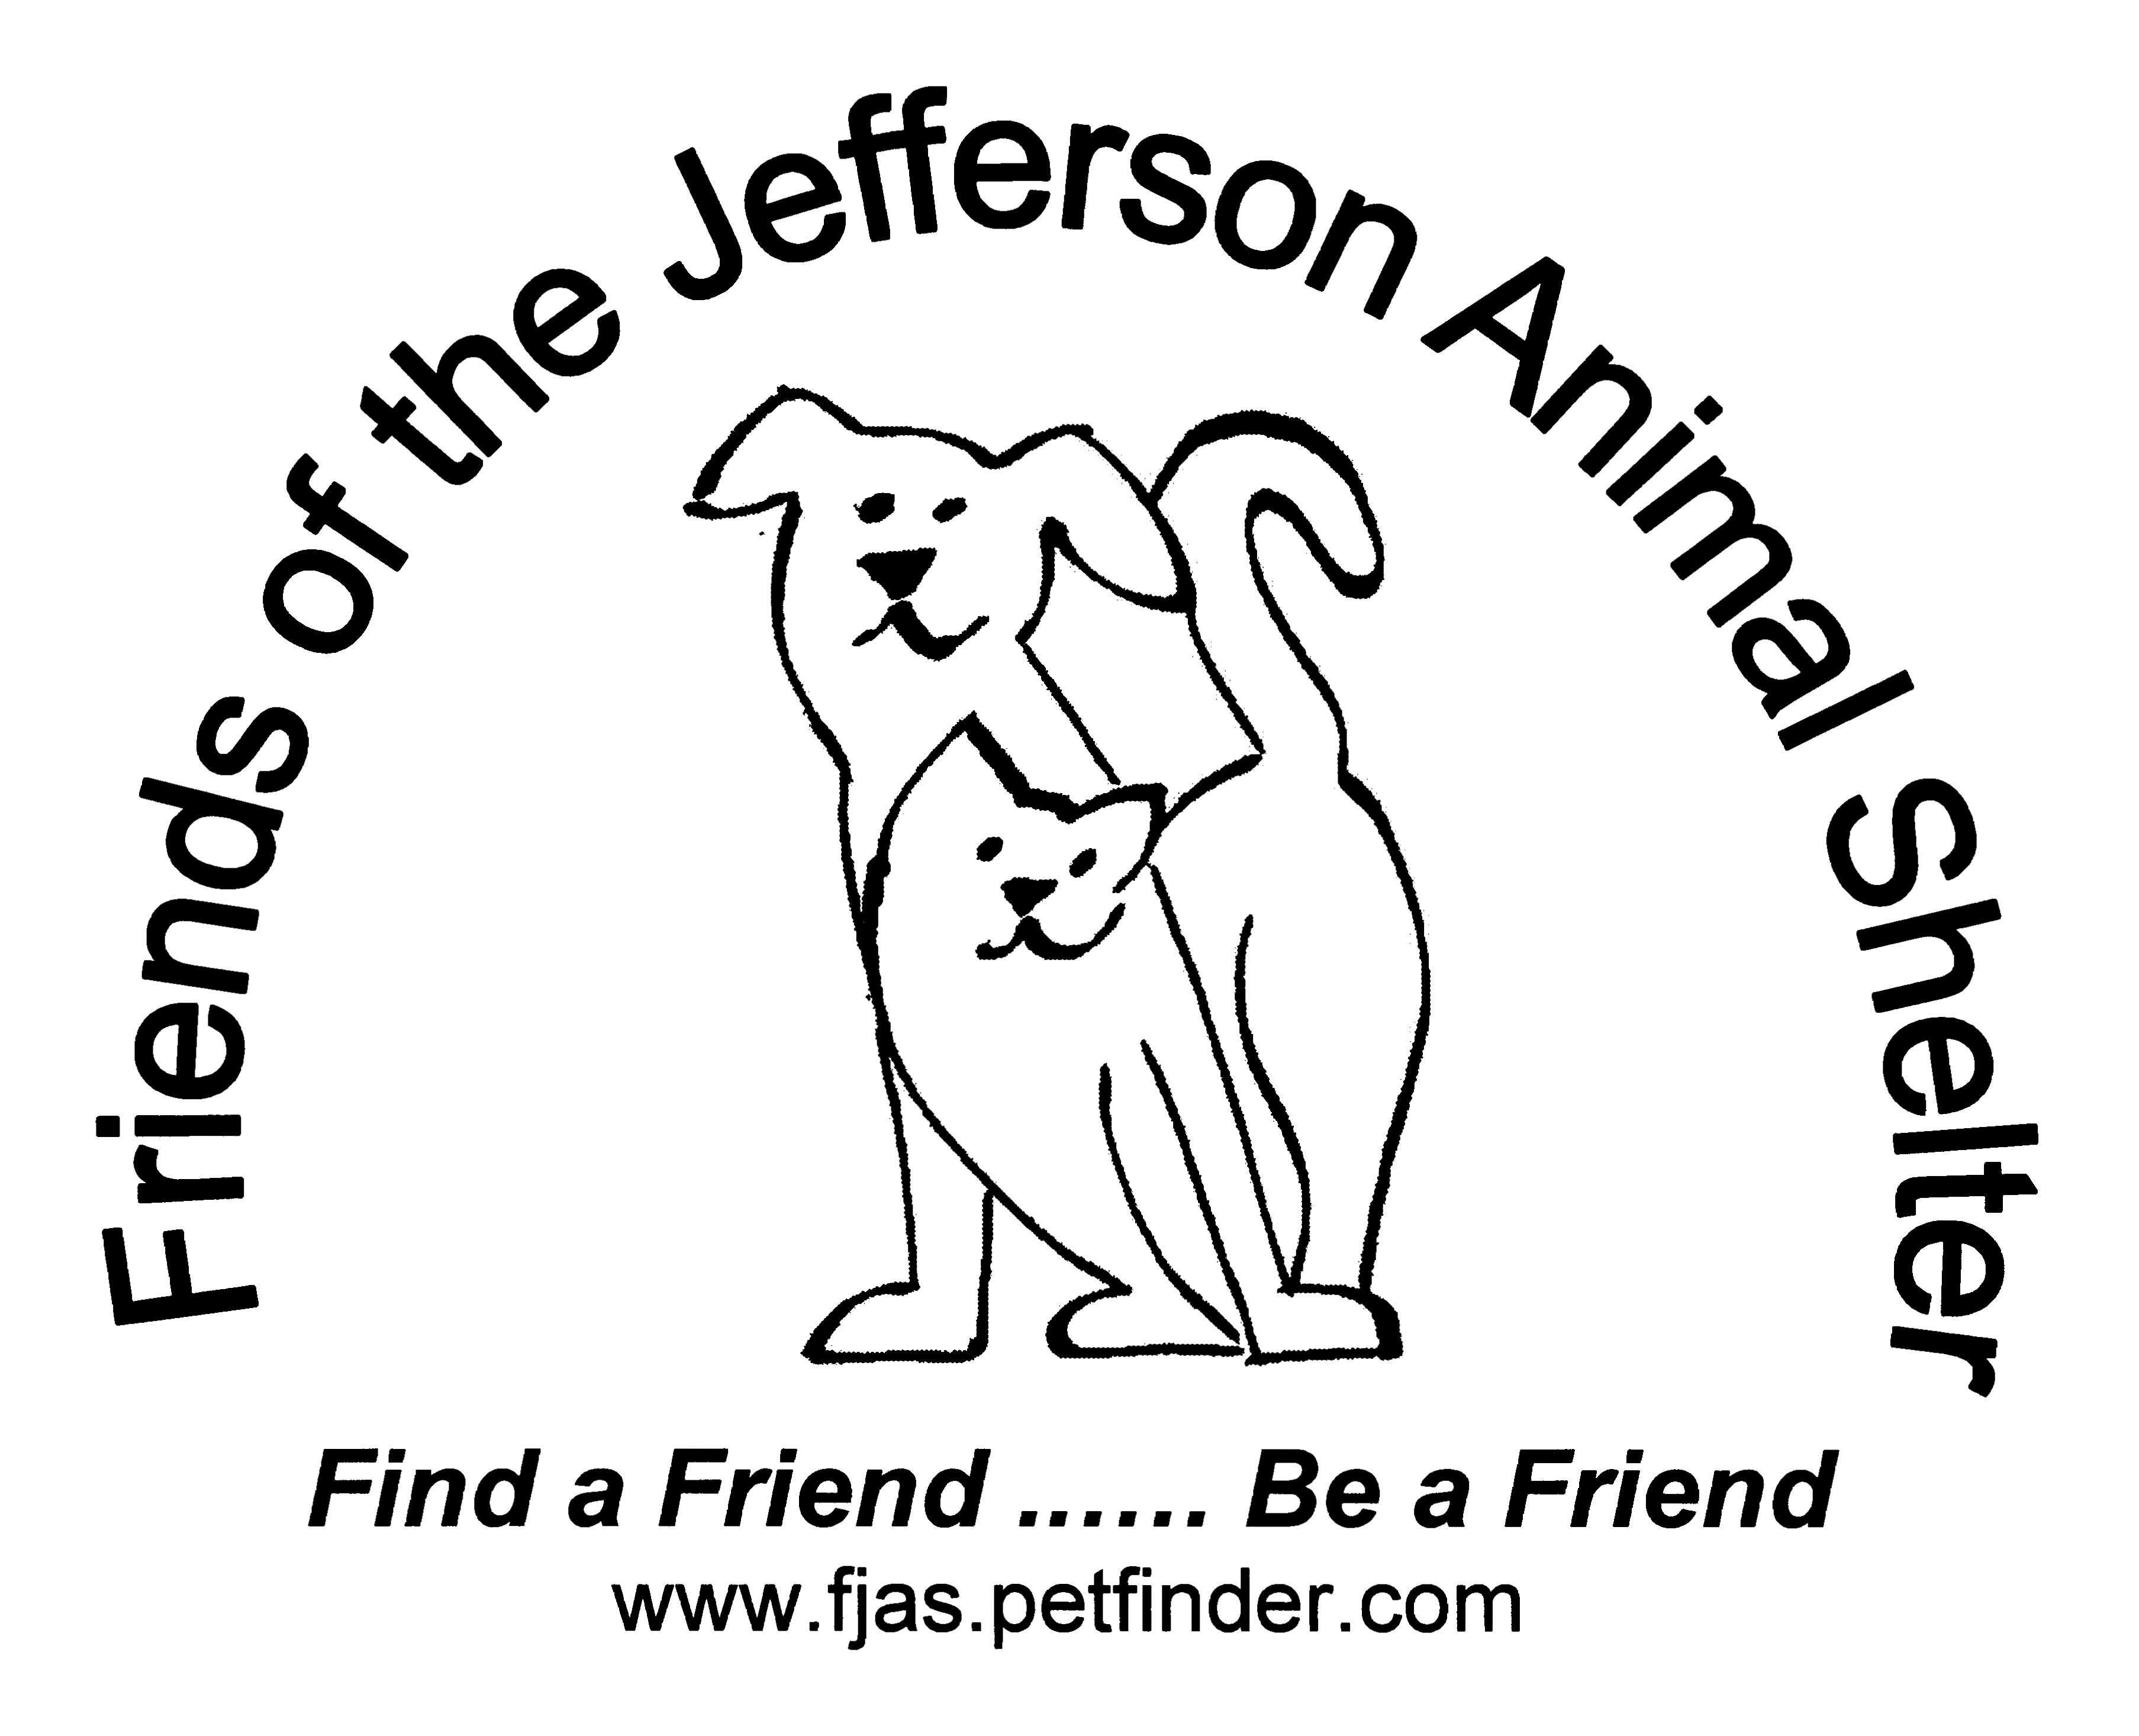 Friends of the Jefferson Animal Shelter